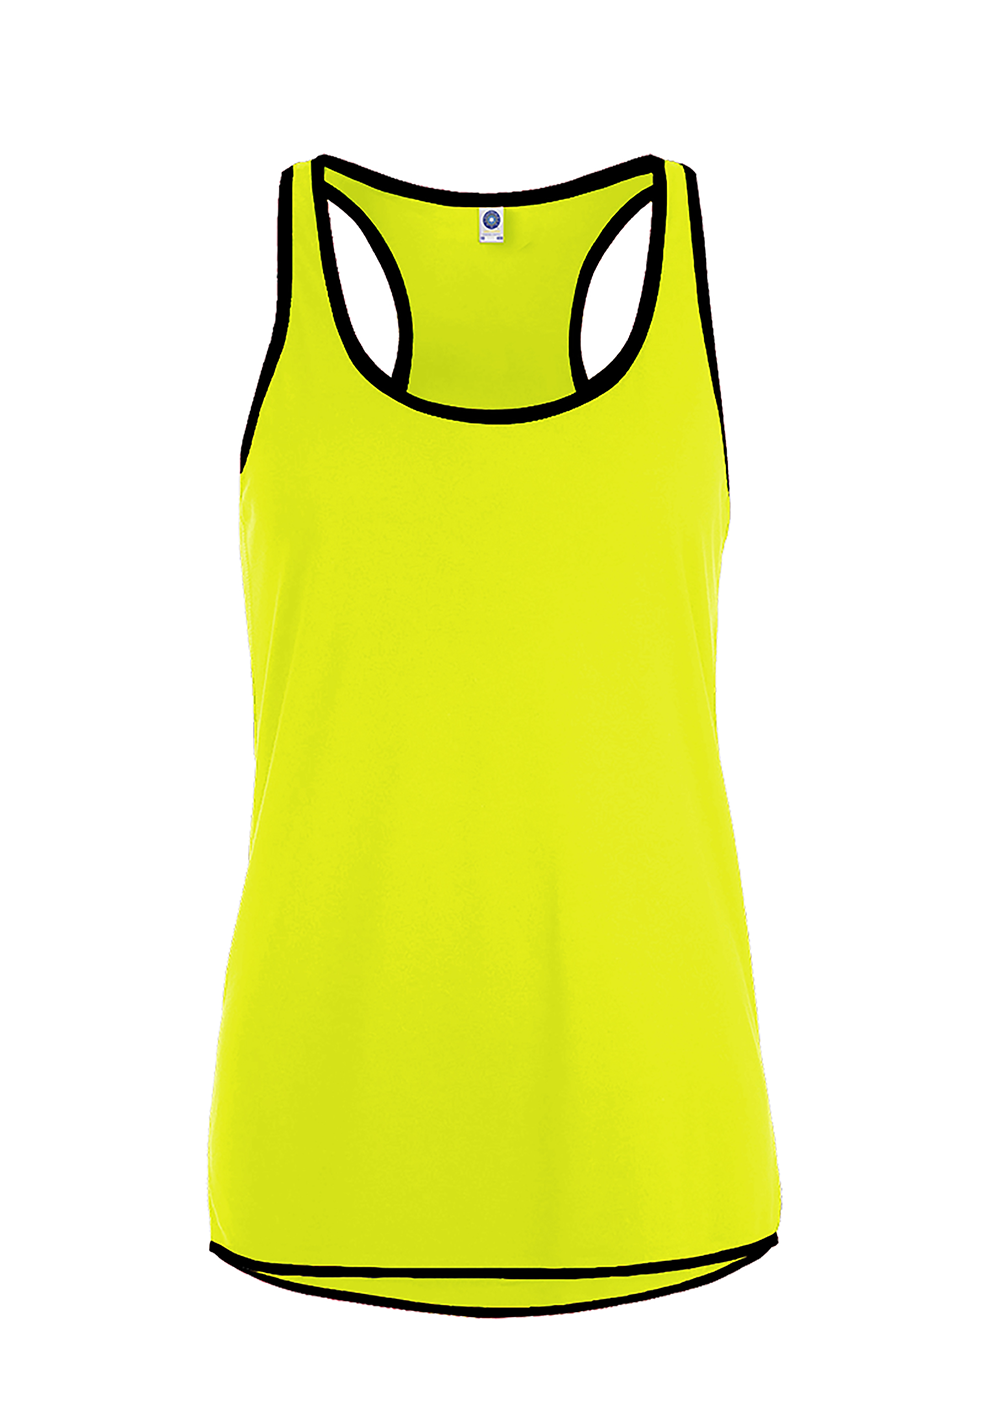 SW405-64-17-FLYellow-Black.png